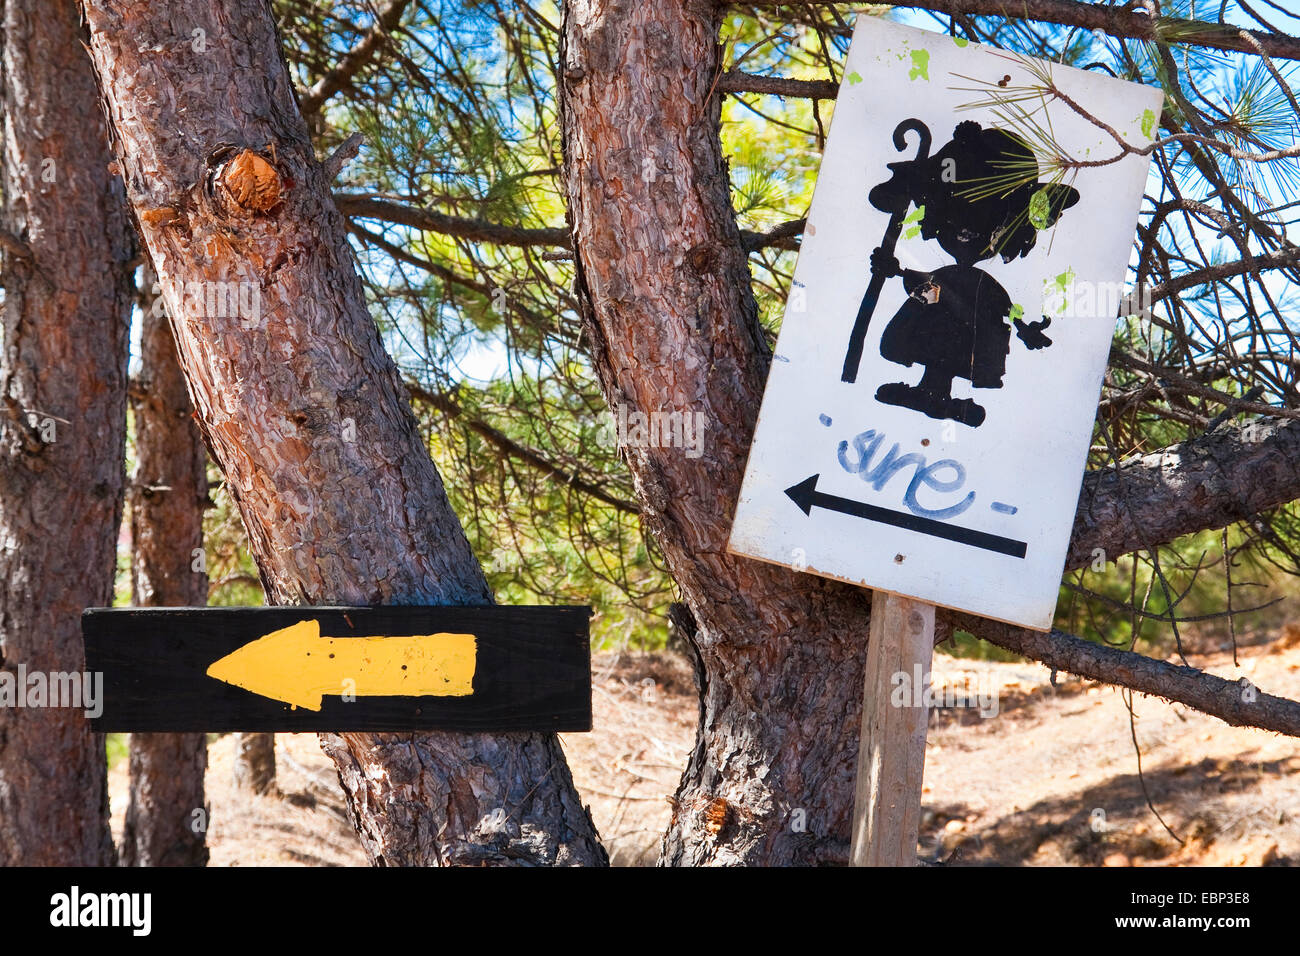 Way of St. James, direction sign near Le�n, Spain, Castile and Leon, Valdelafuente - Stock Image